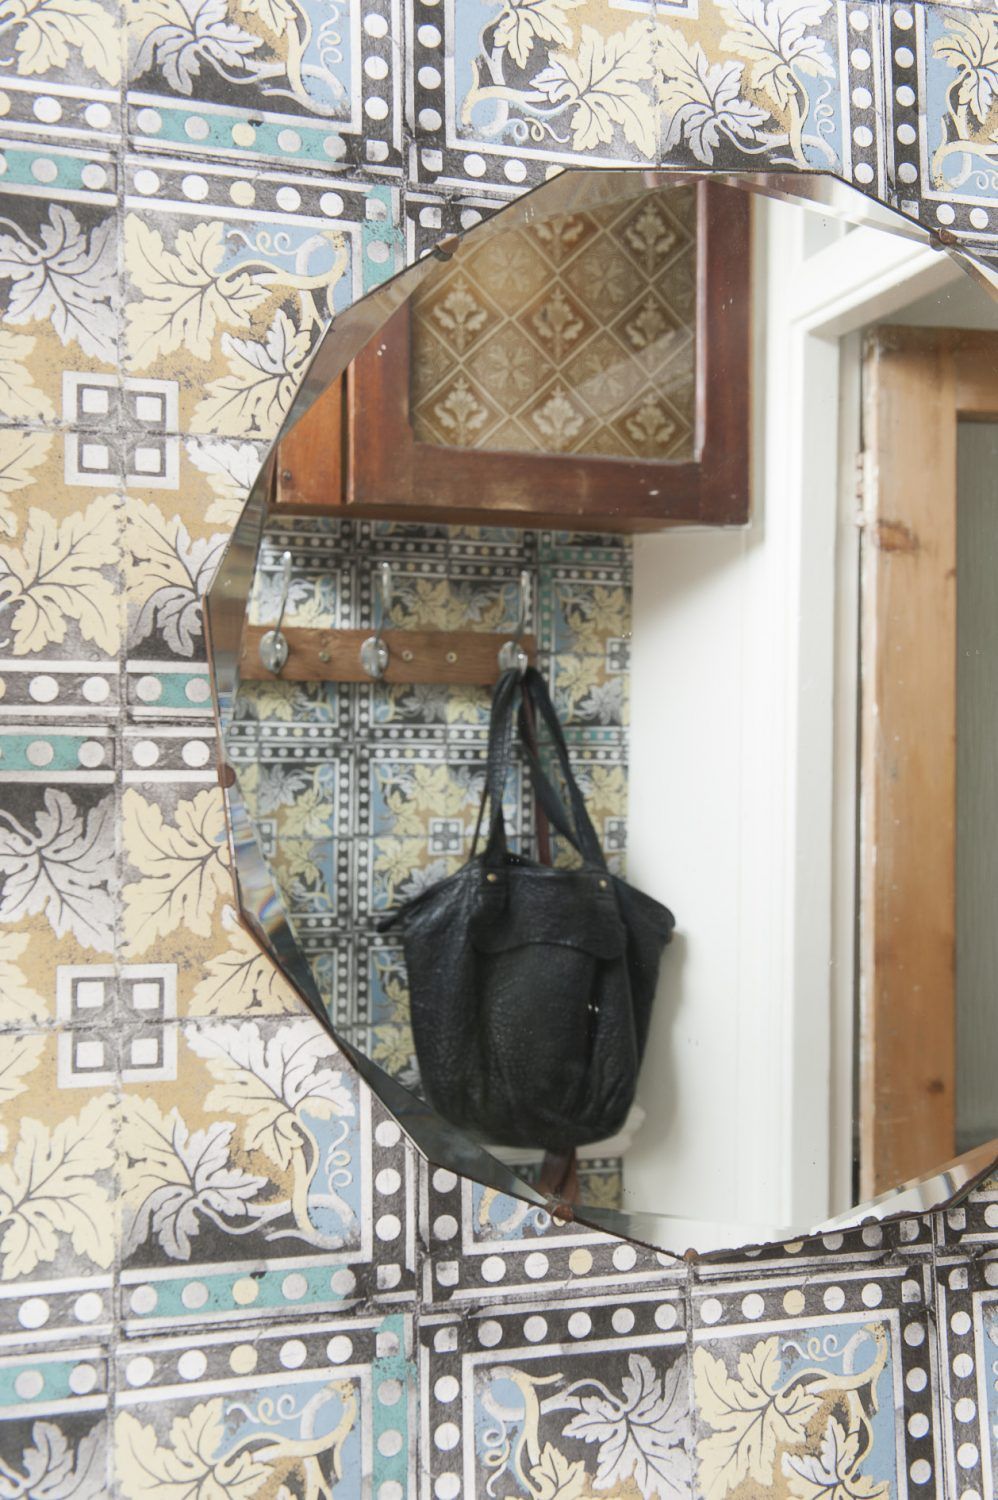 The wallpaper in the porch is Louise's design Grapevine, from the Paper Tiles collection